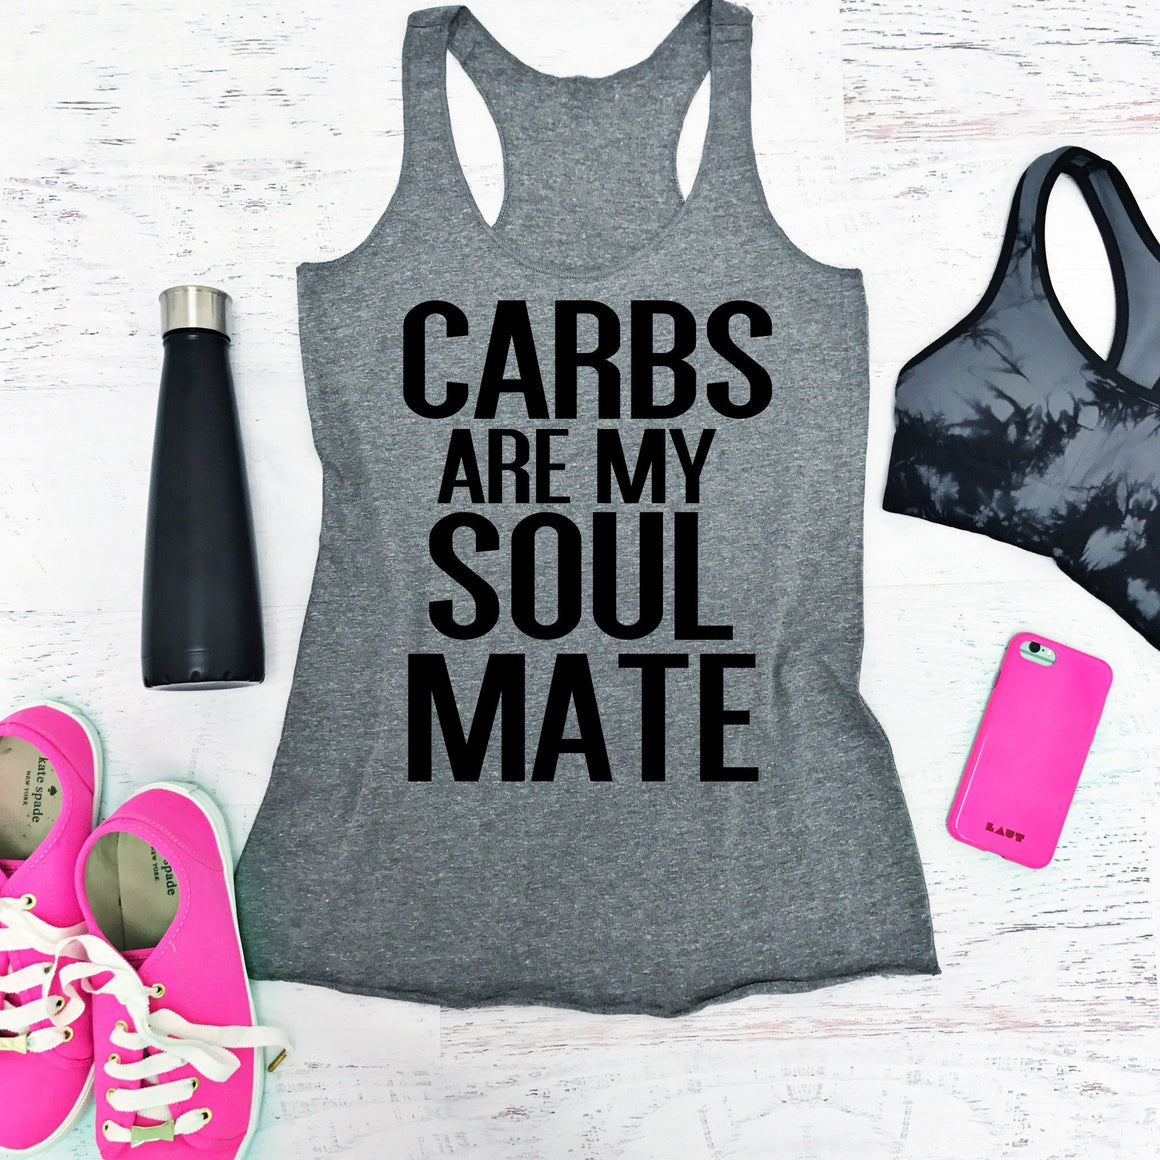 Carbs Are My Soul Mate - Strong Confident You